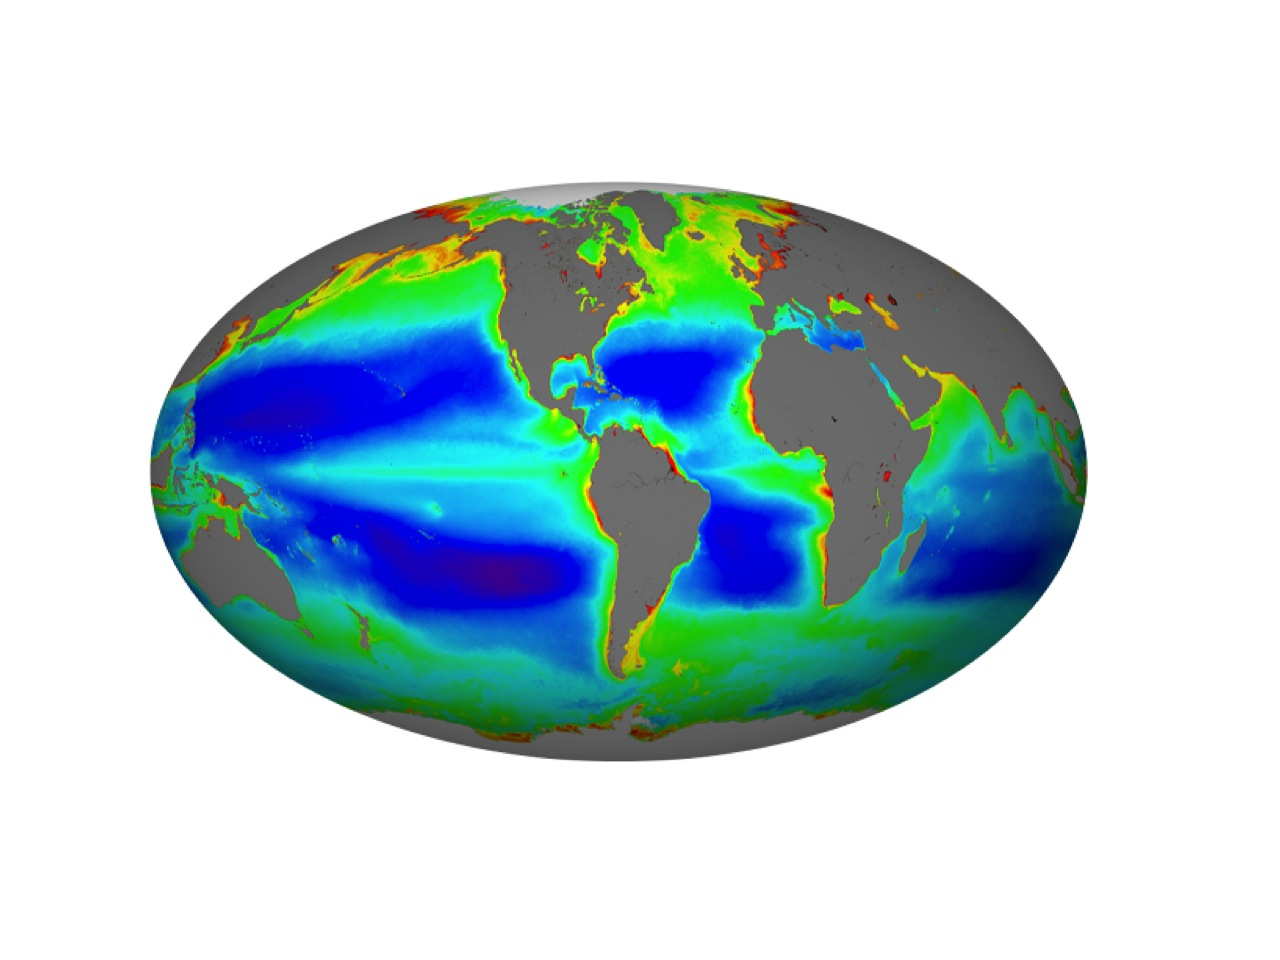 Gms carbon and climate briefing november 12 2015 1280x960 jpeg 1300 kb publicscrutiny Image collections